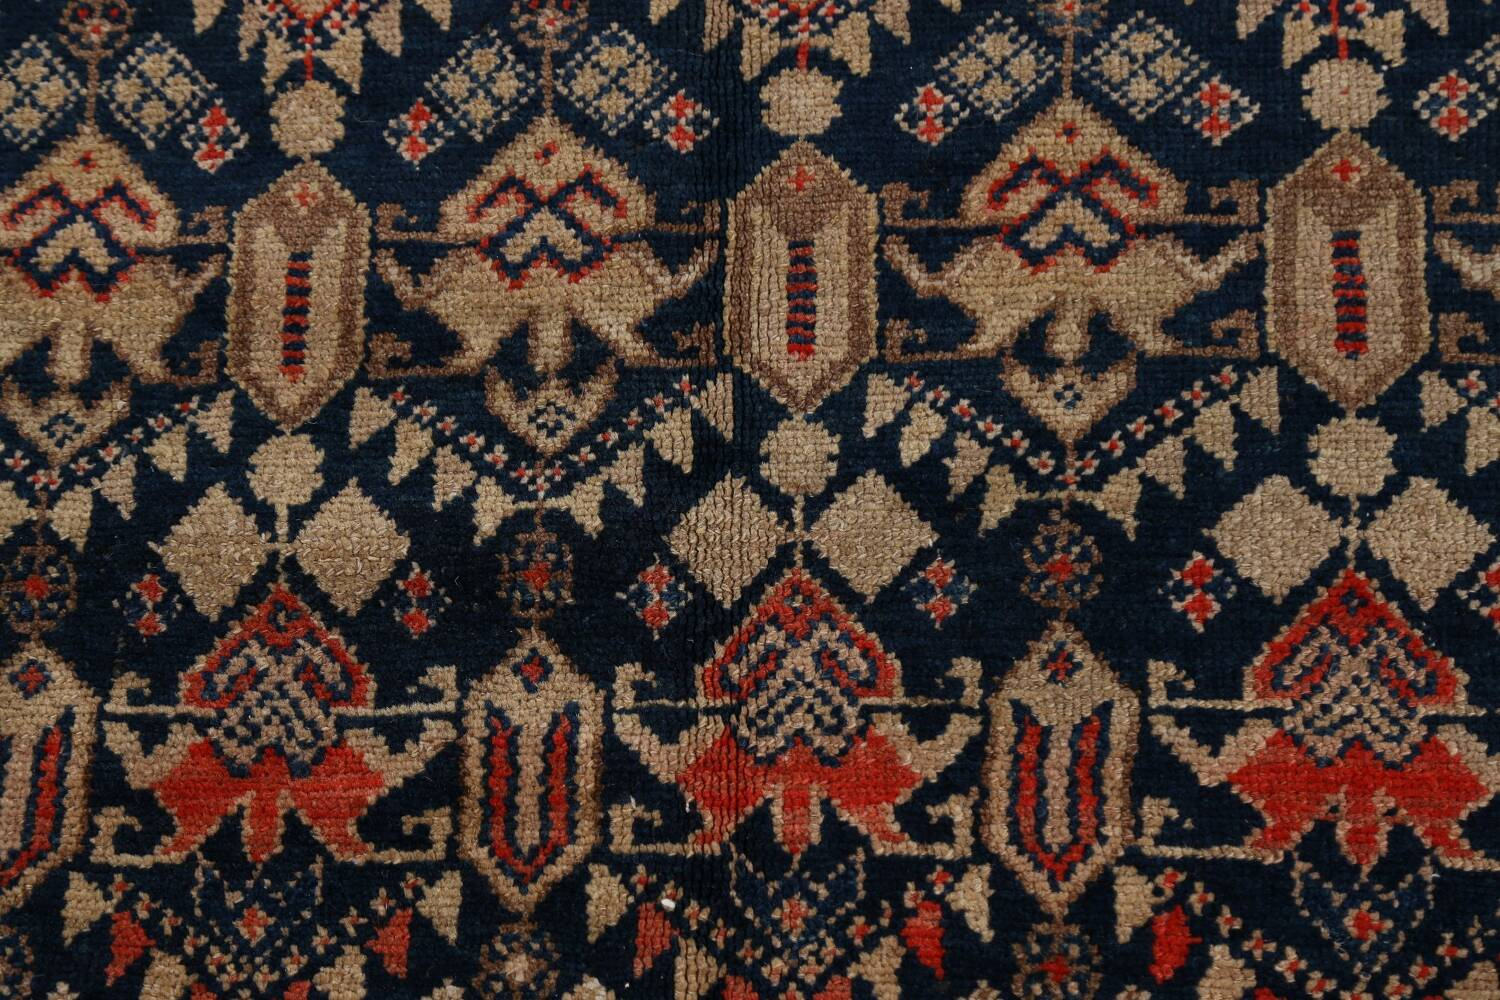 Pre-1900 Antique Vegetable Dye Malayer Persian Area Rug 5x11 image 9